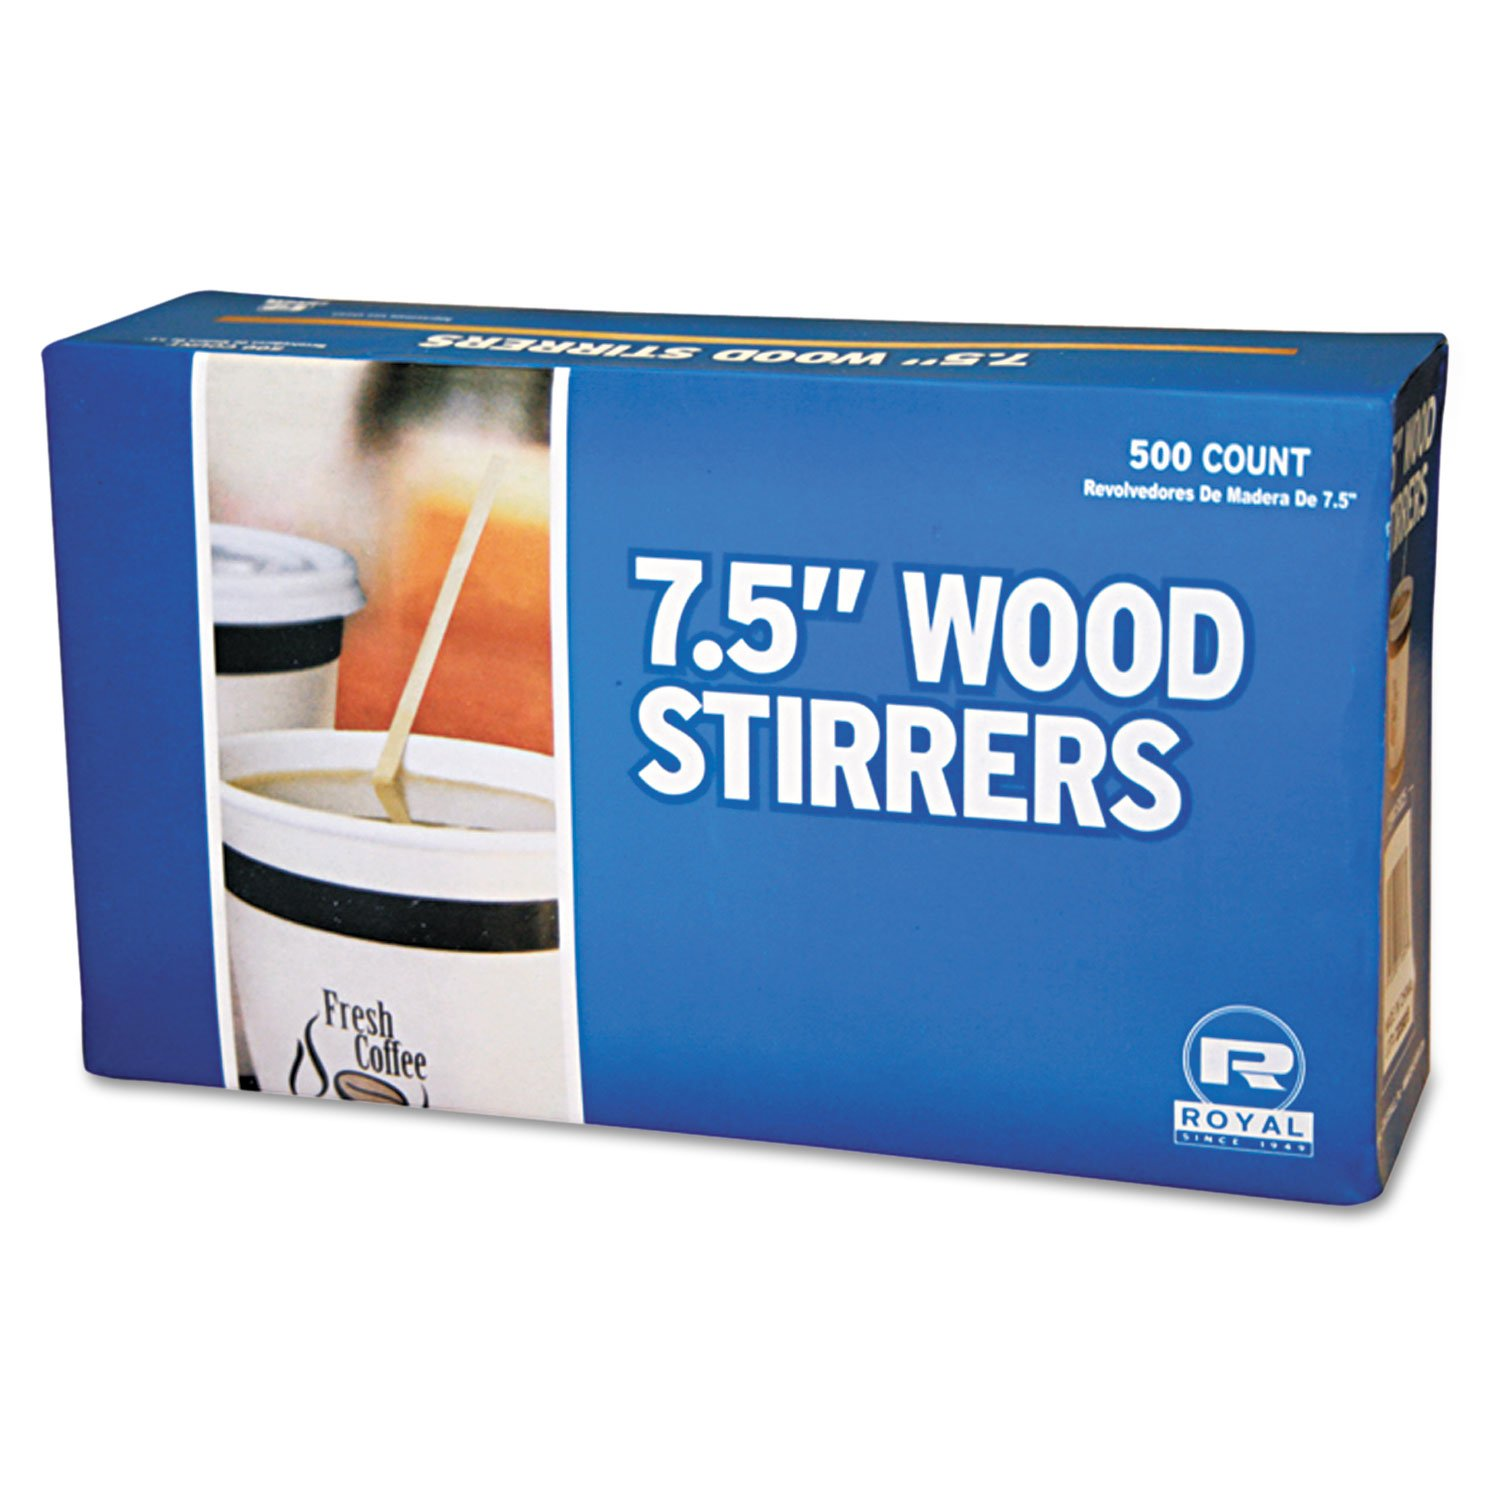 RPPR825 - Wood Coffee Stirs, 7 1/2quot, Natural